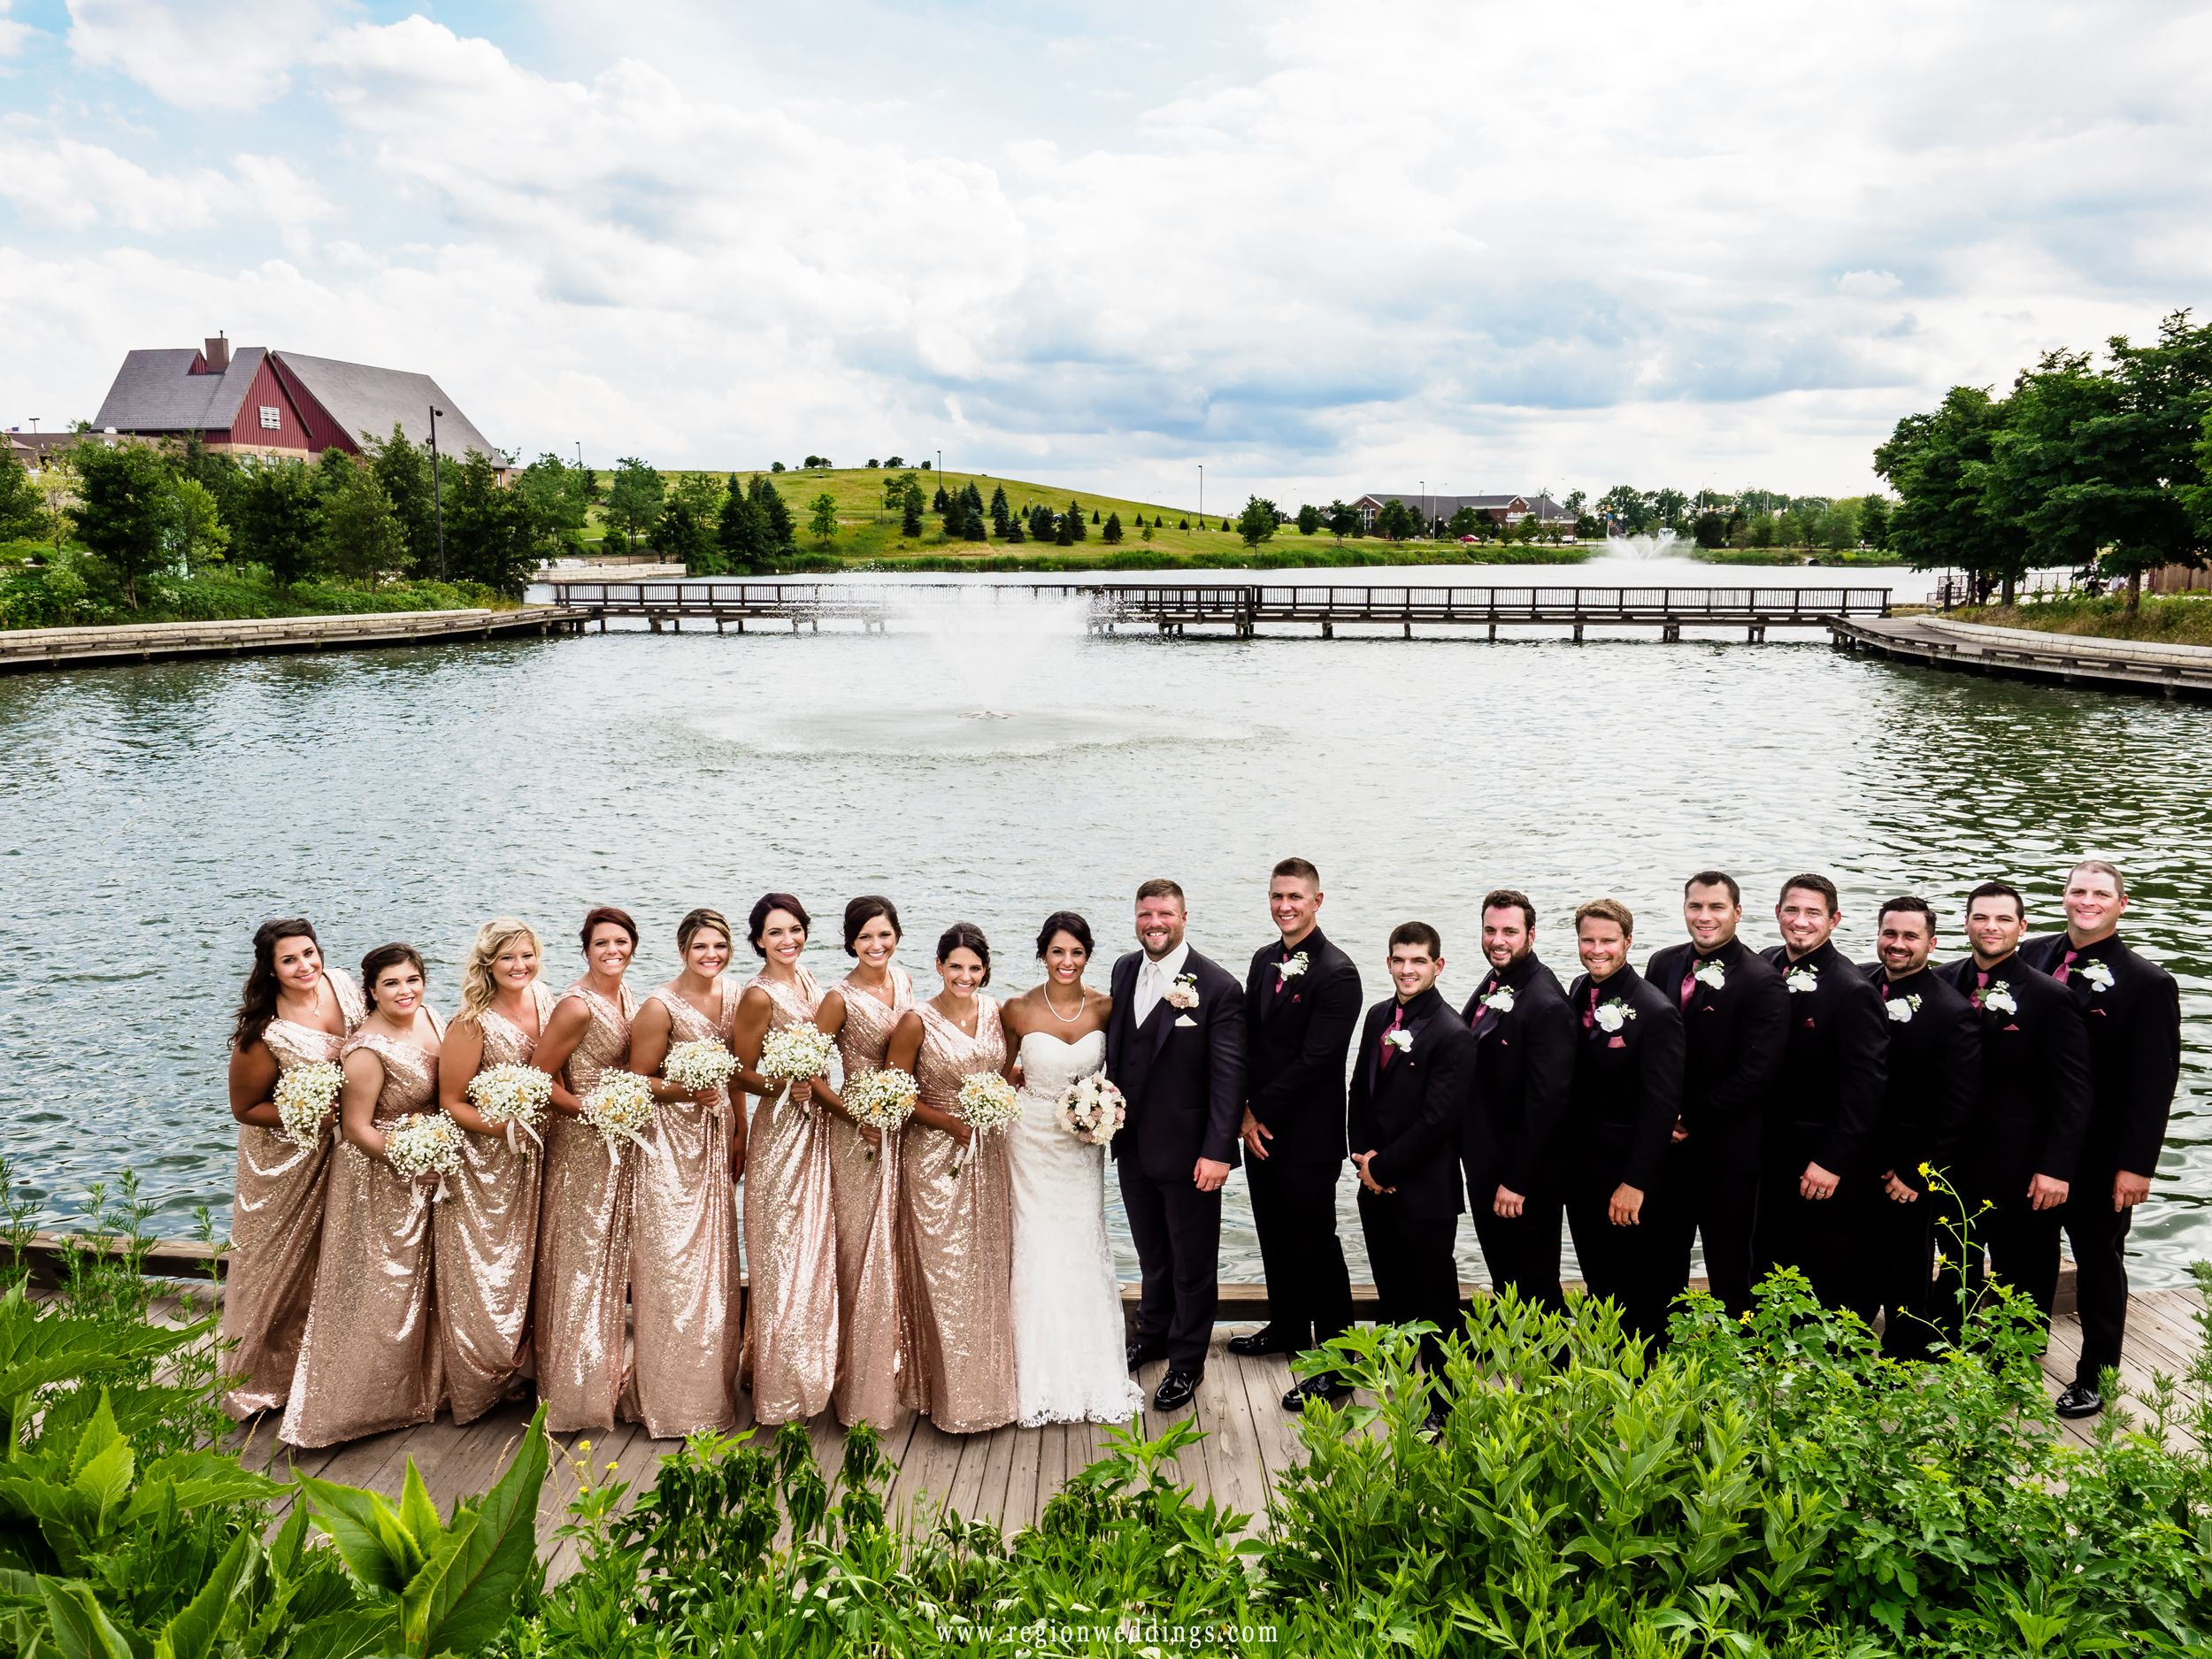 Wedding party group photos overlooking the lake fountain at ...